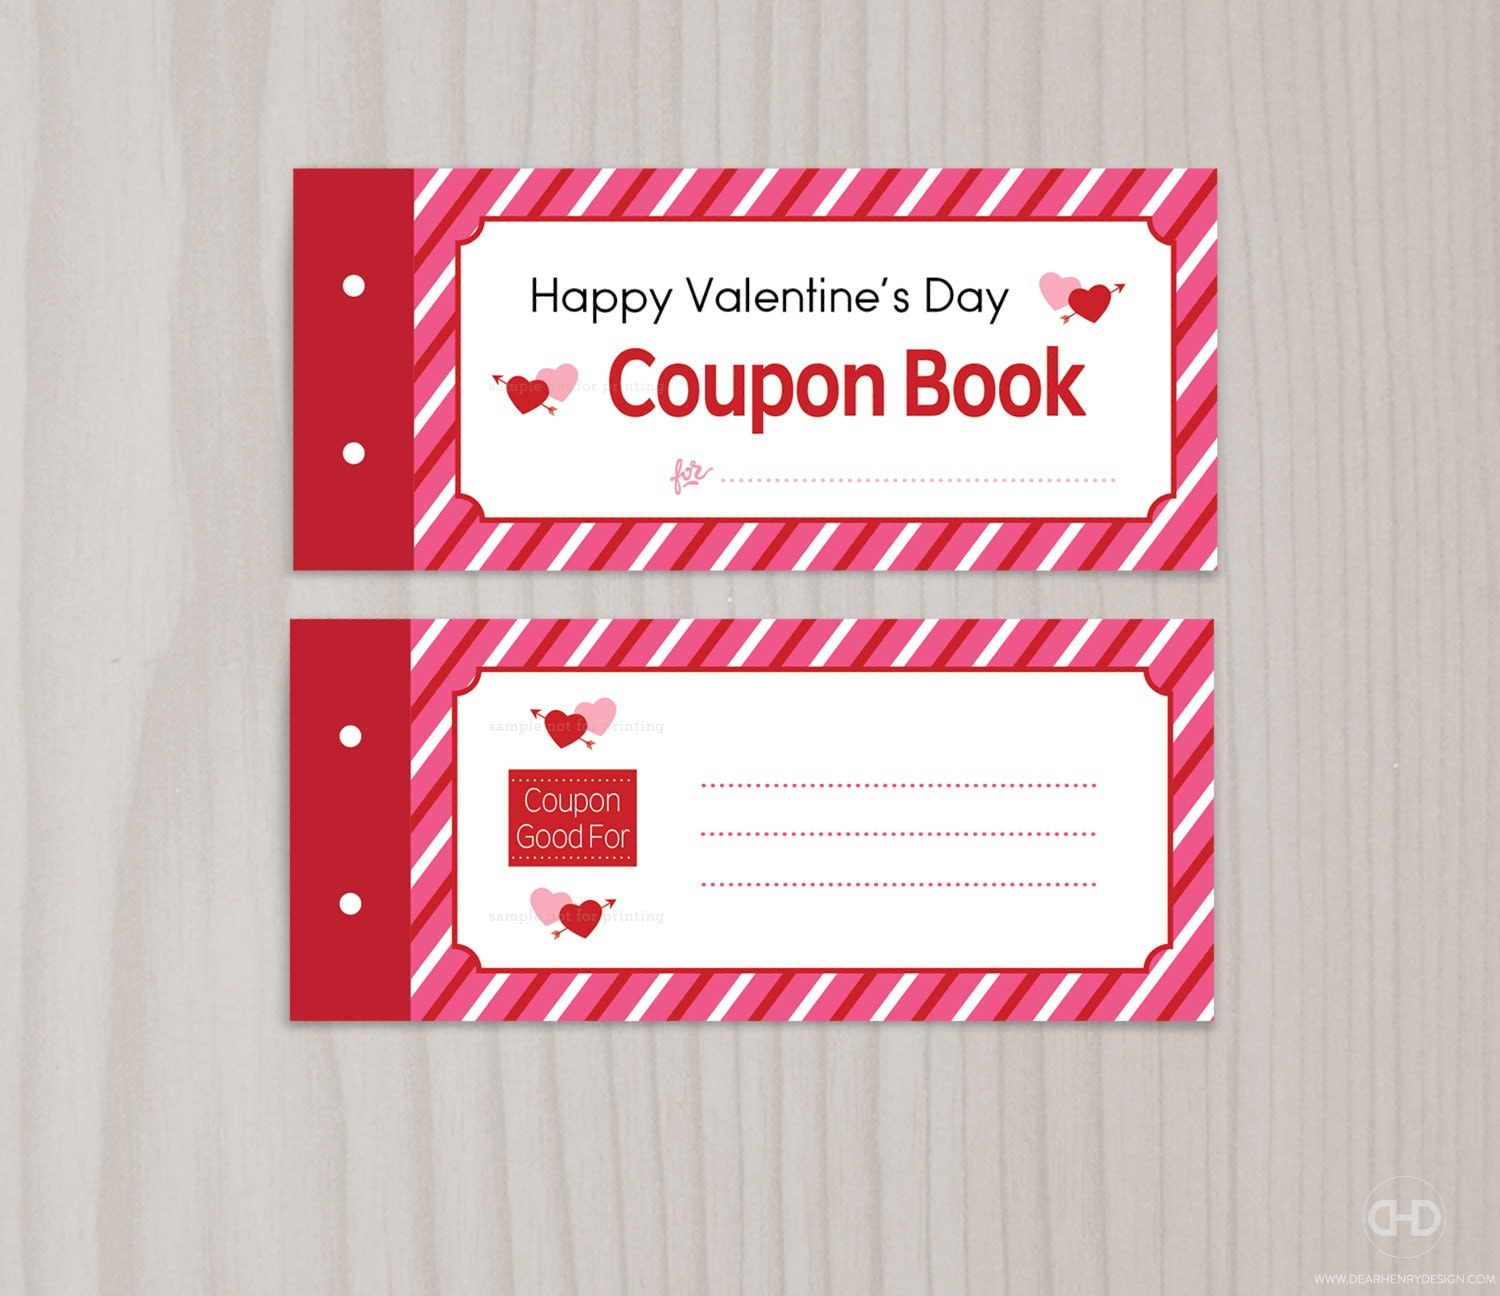 Photo book coupons